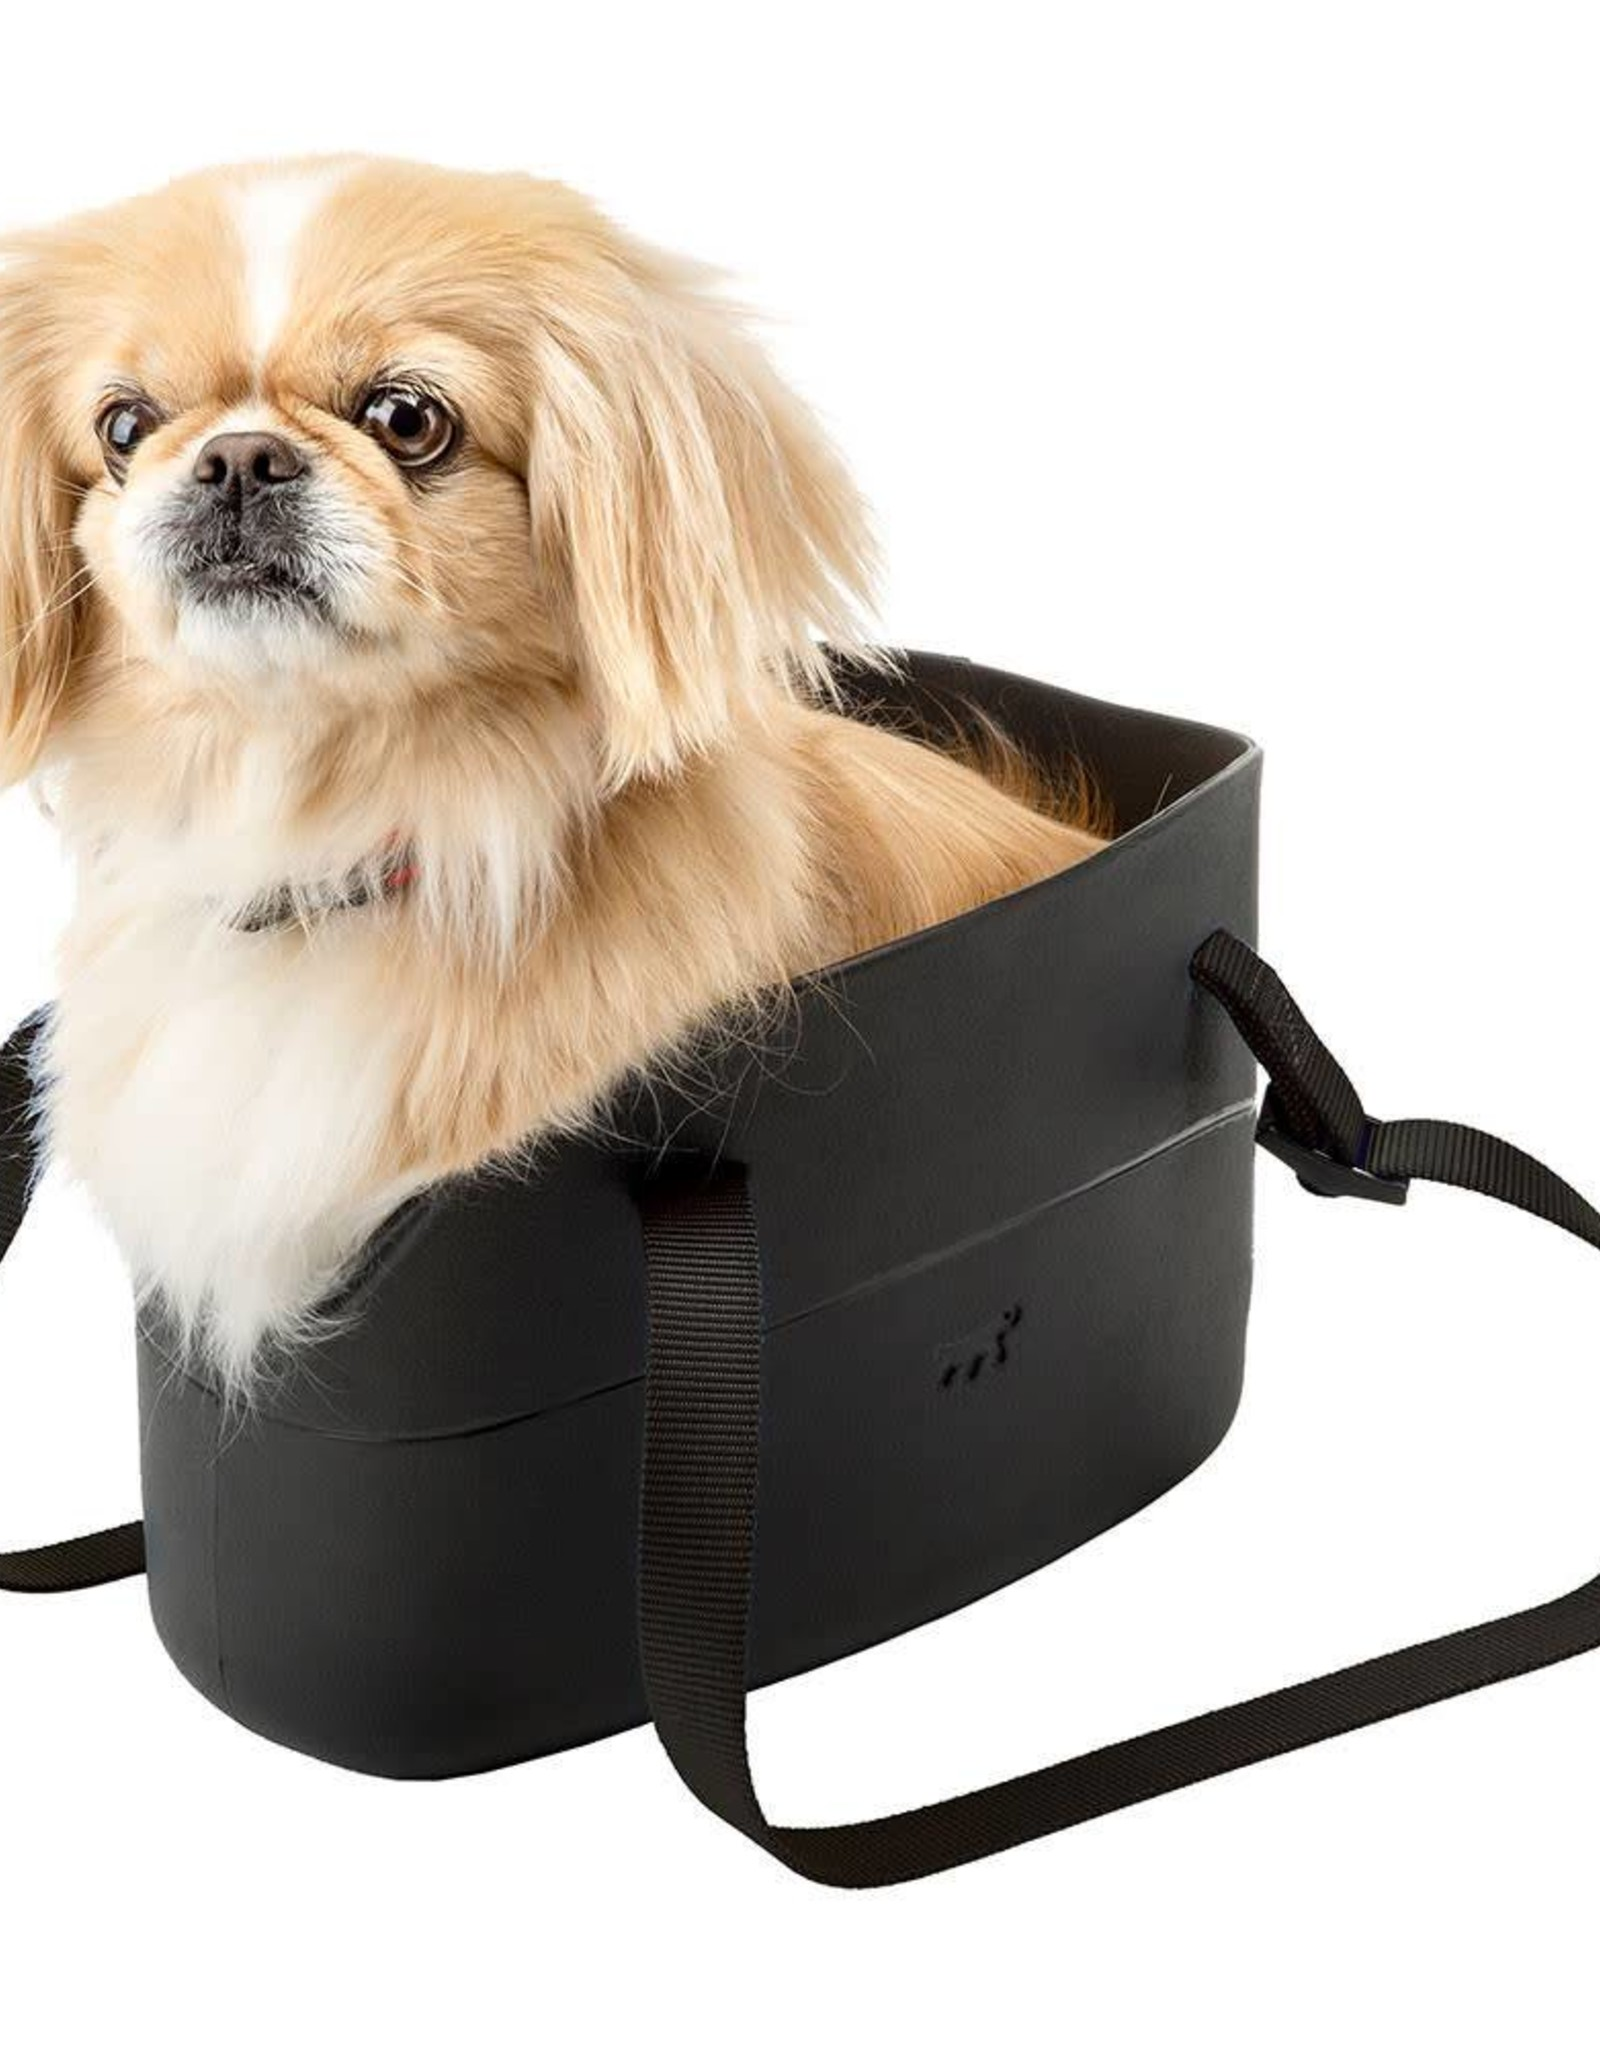 Ferplast With Me Small Soft Dog Carrier